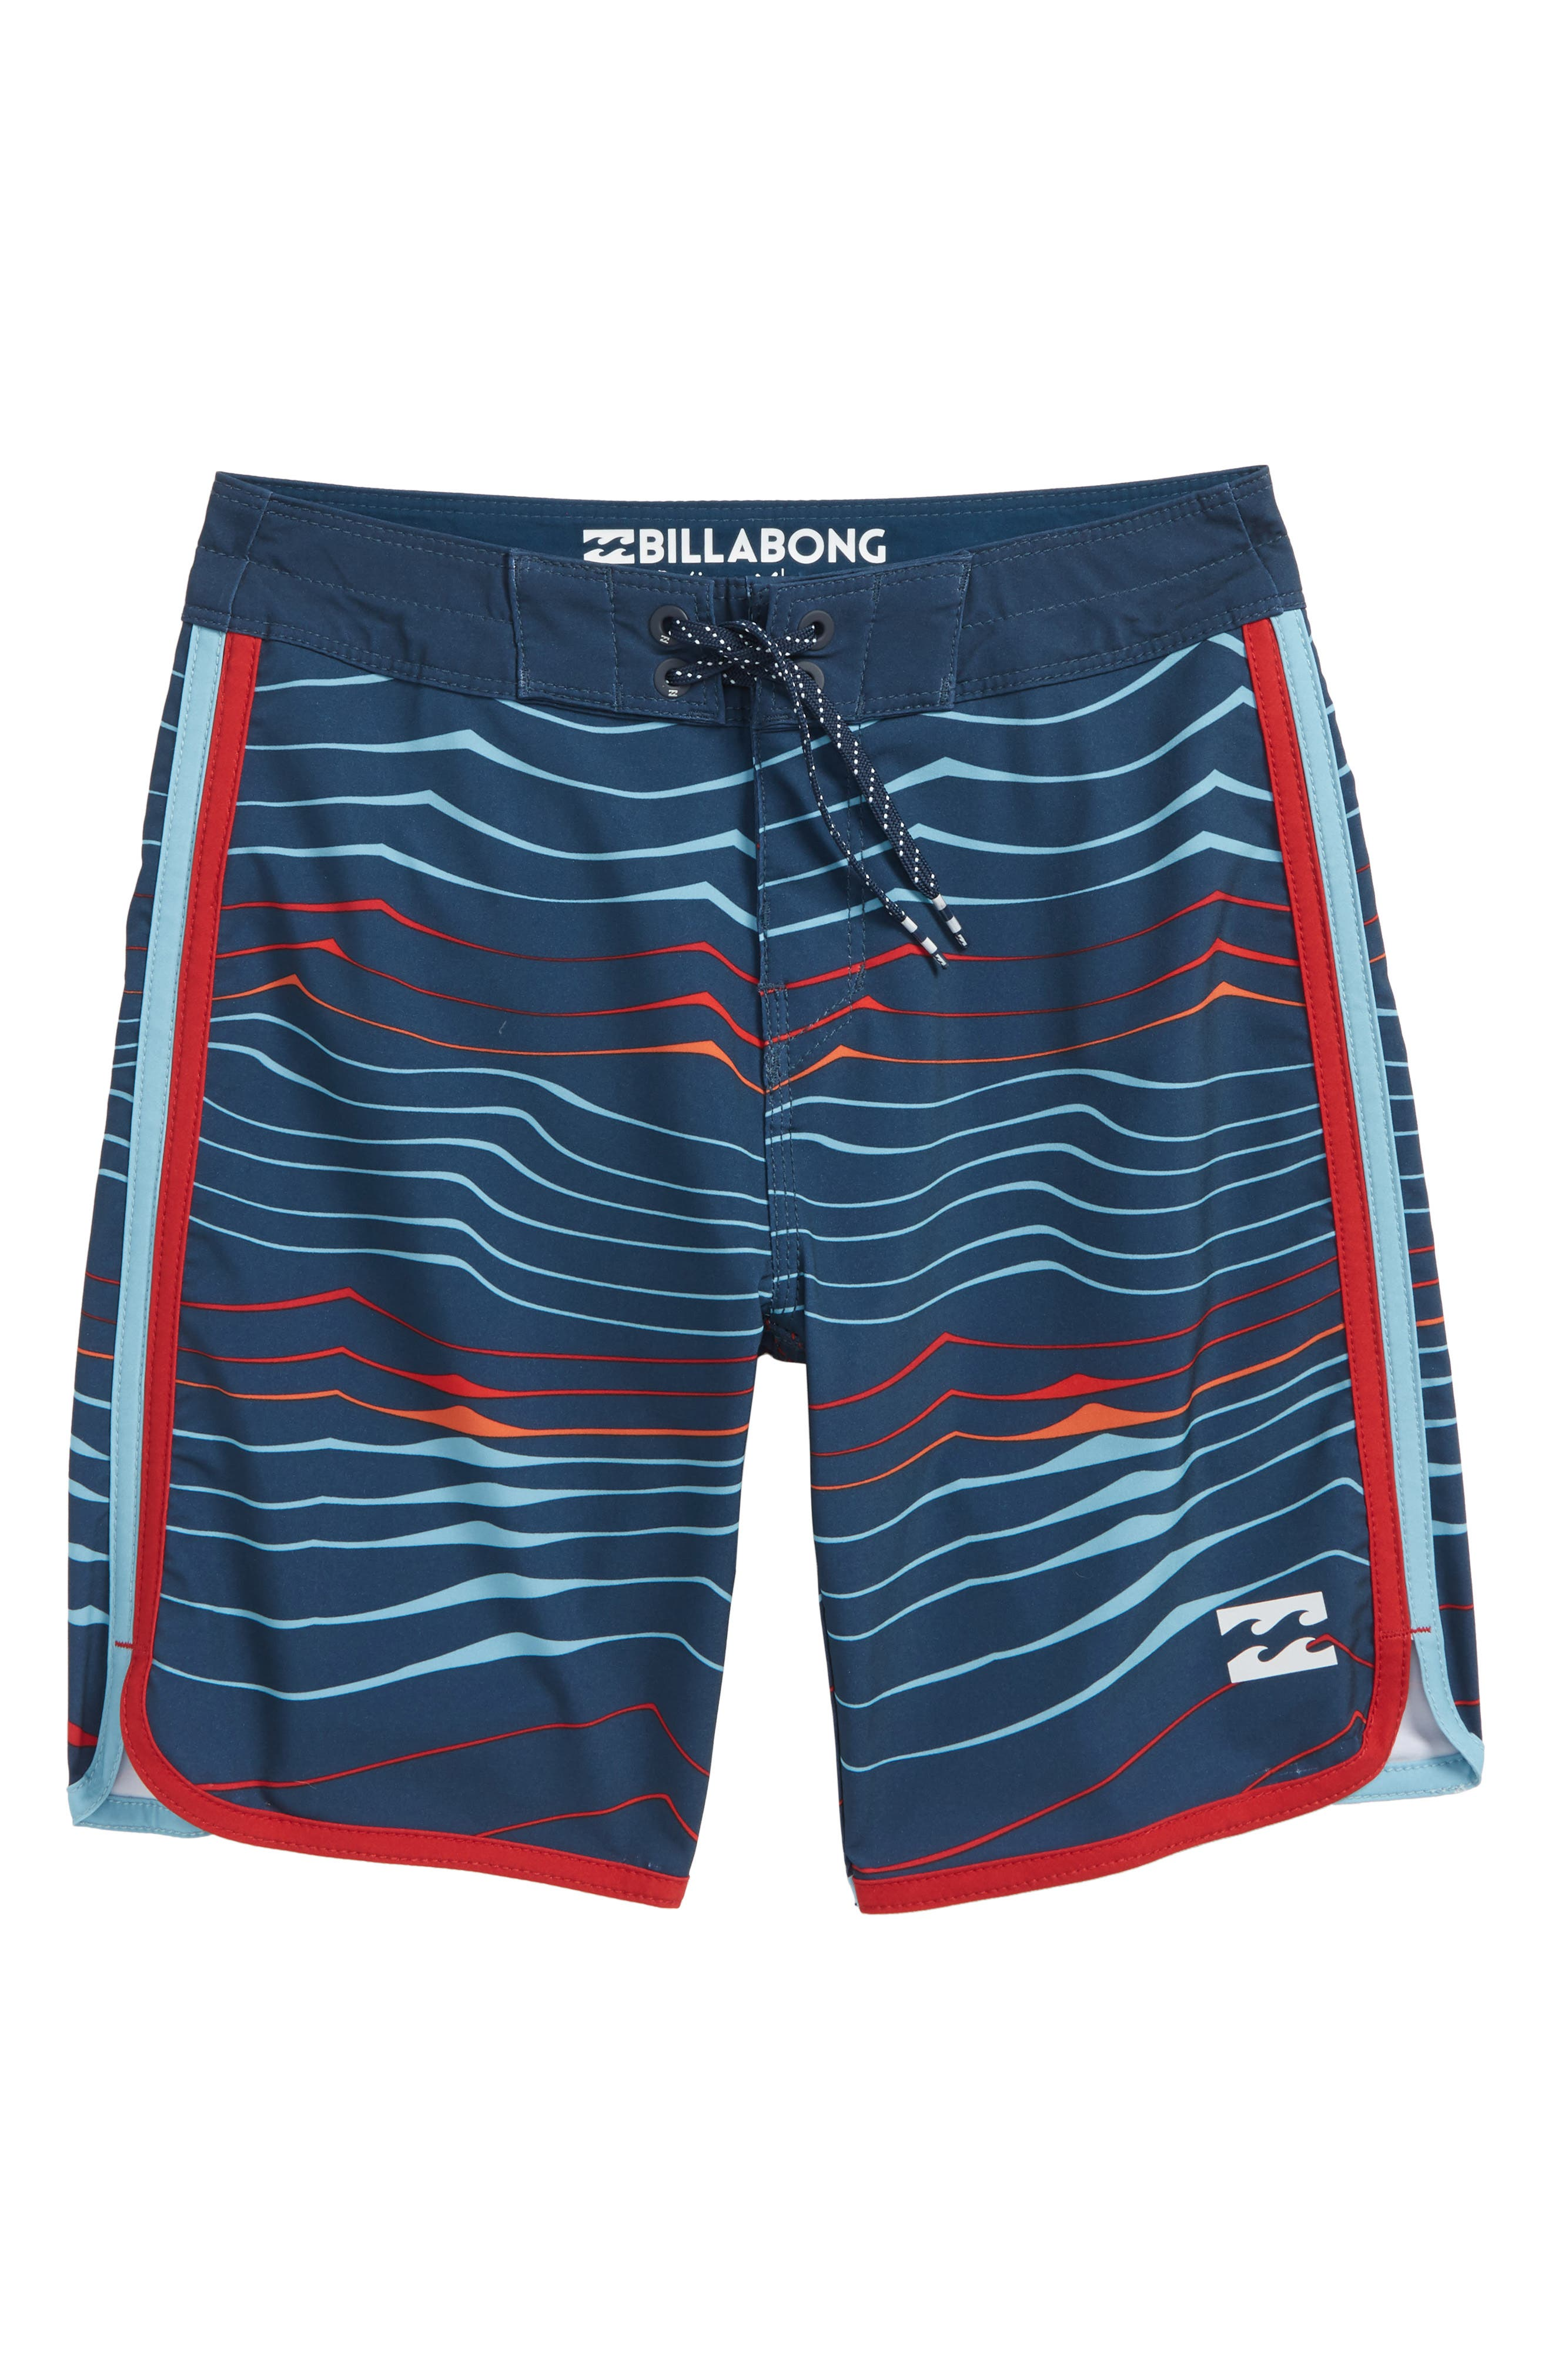 73 X Line Up Board Shorts,                         Main,                         color, 415